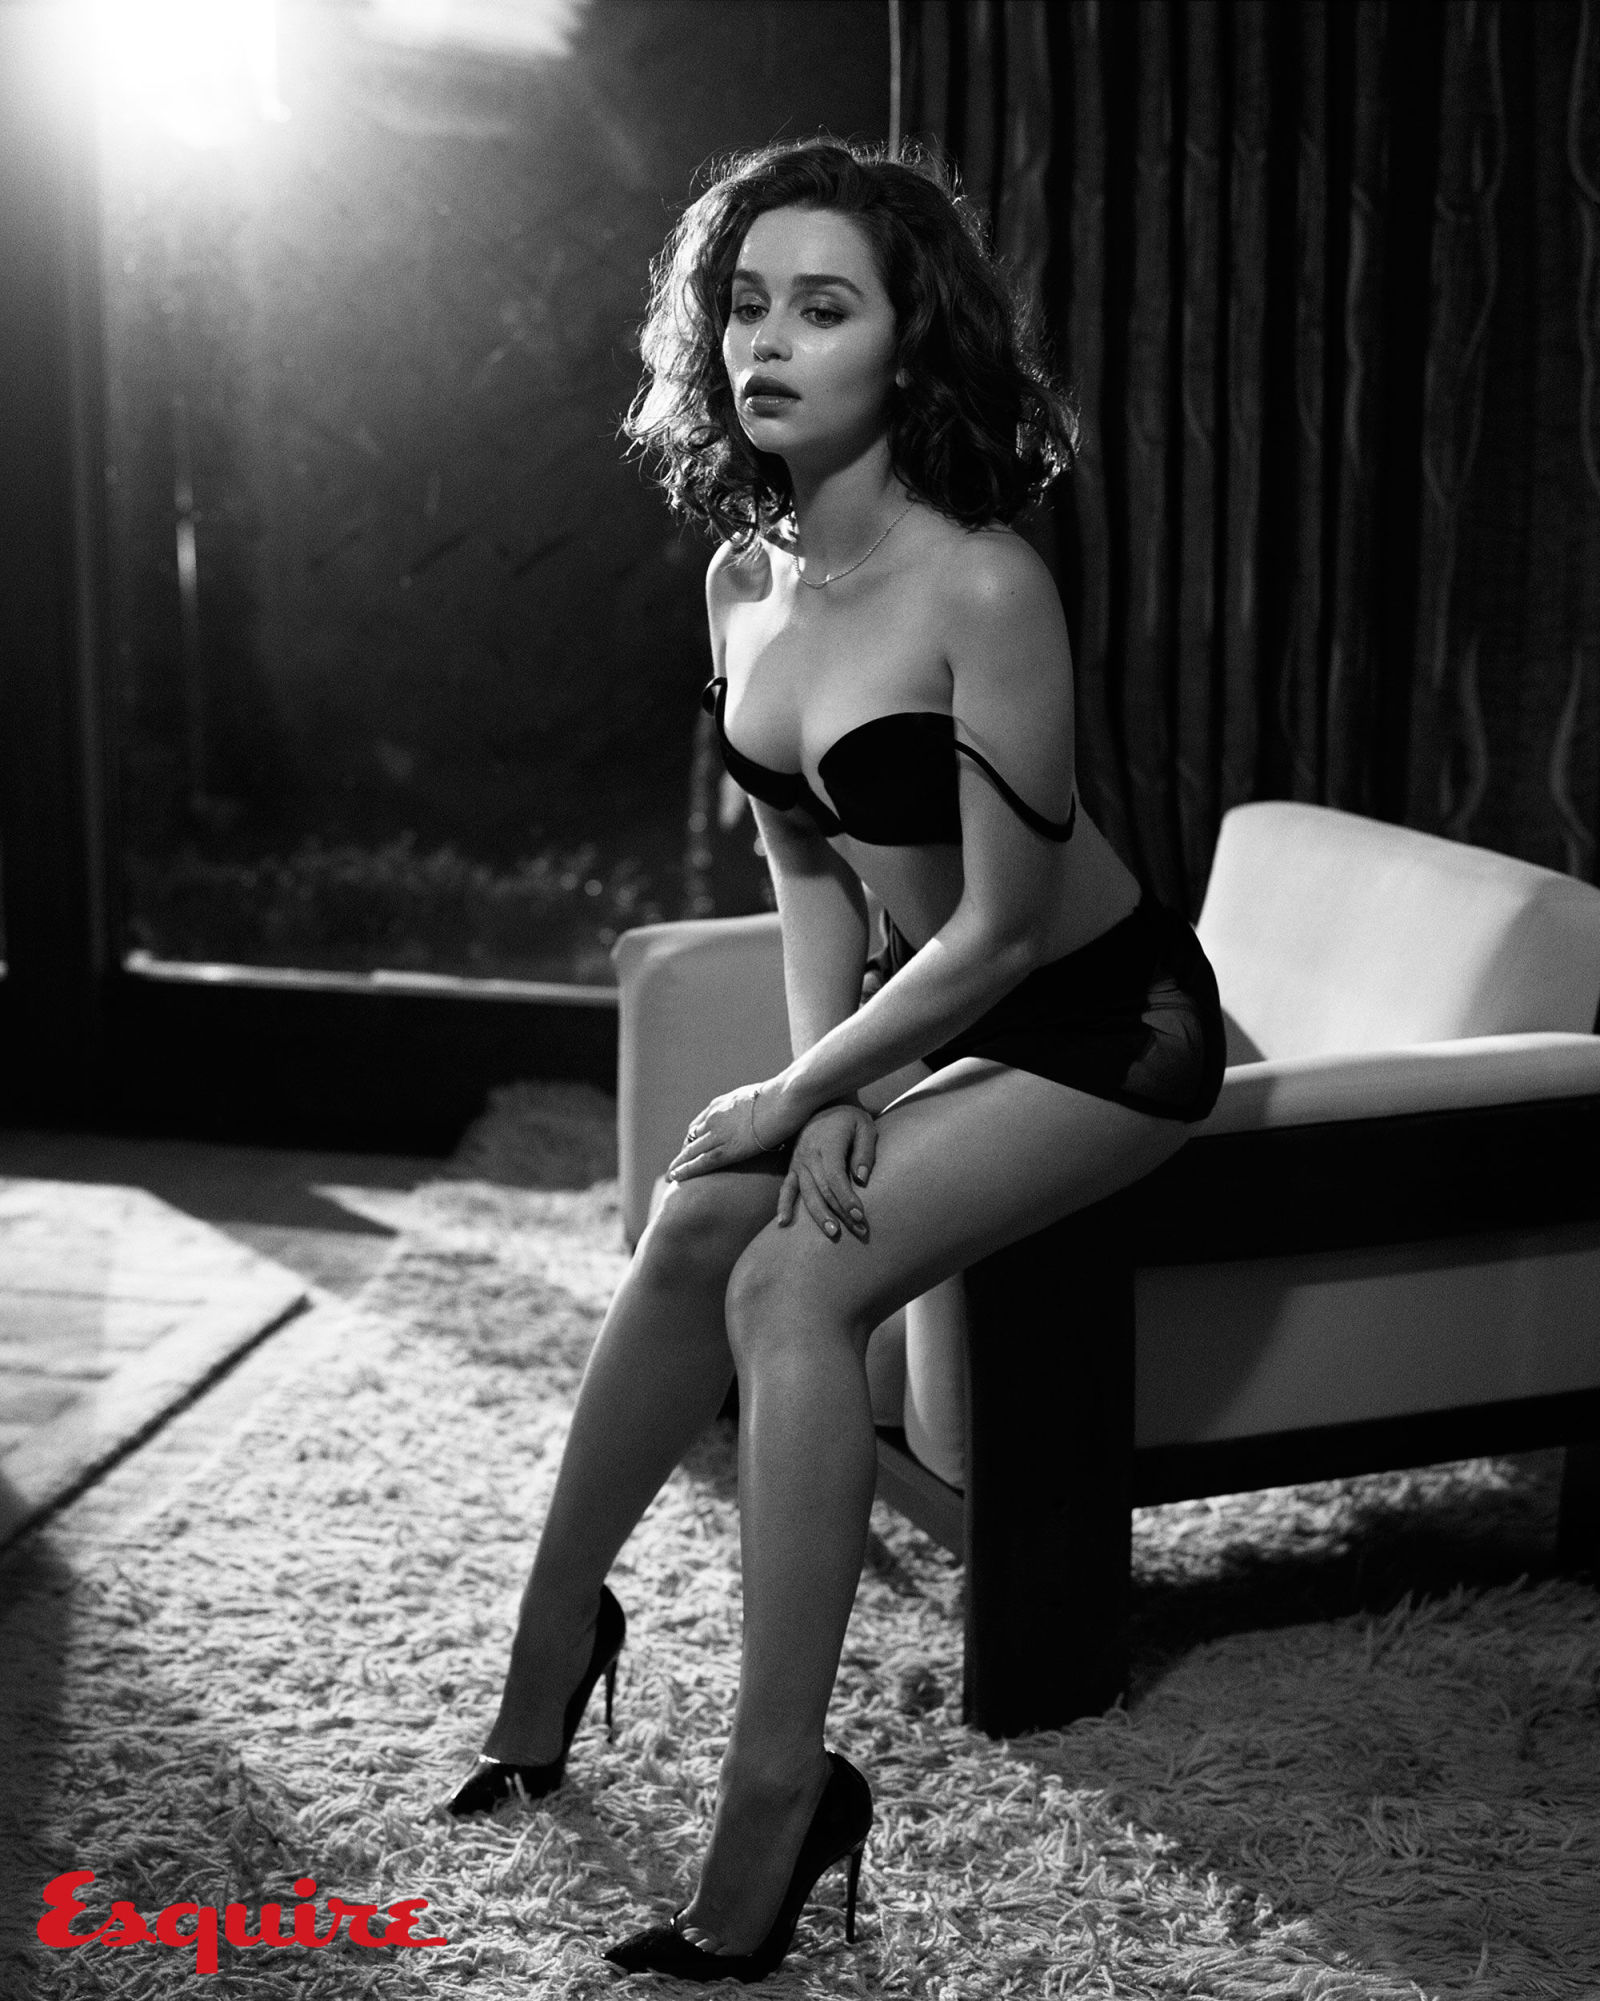 emilia clarke named esquire s sexiest woman alive for